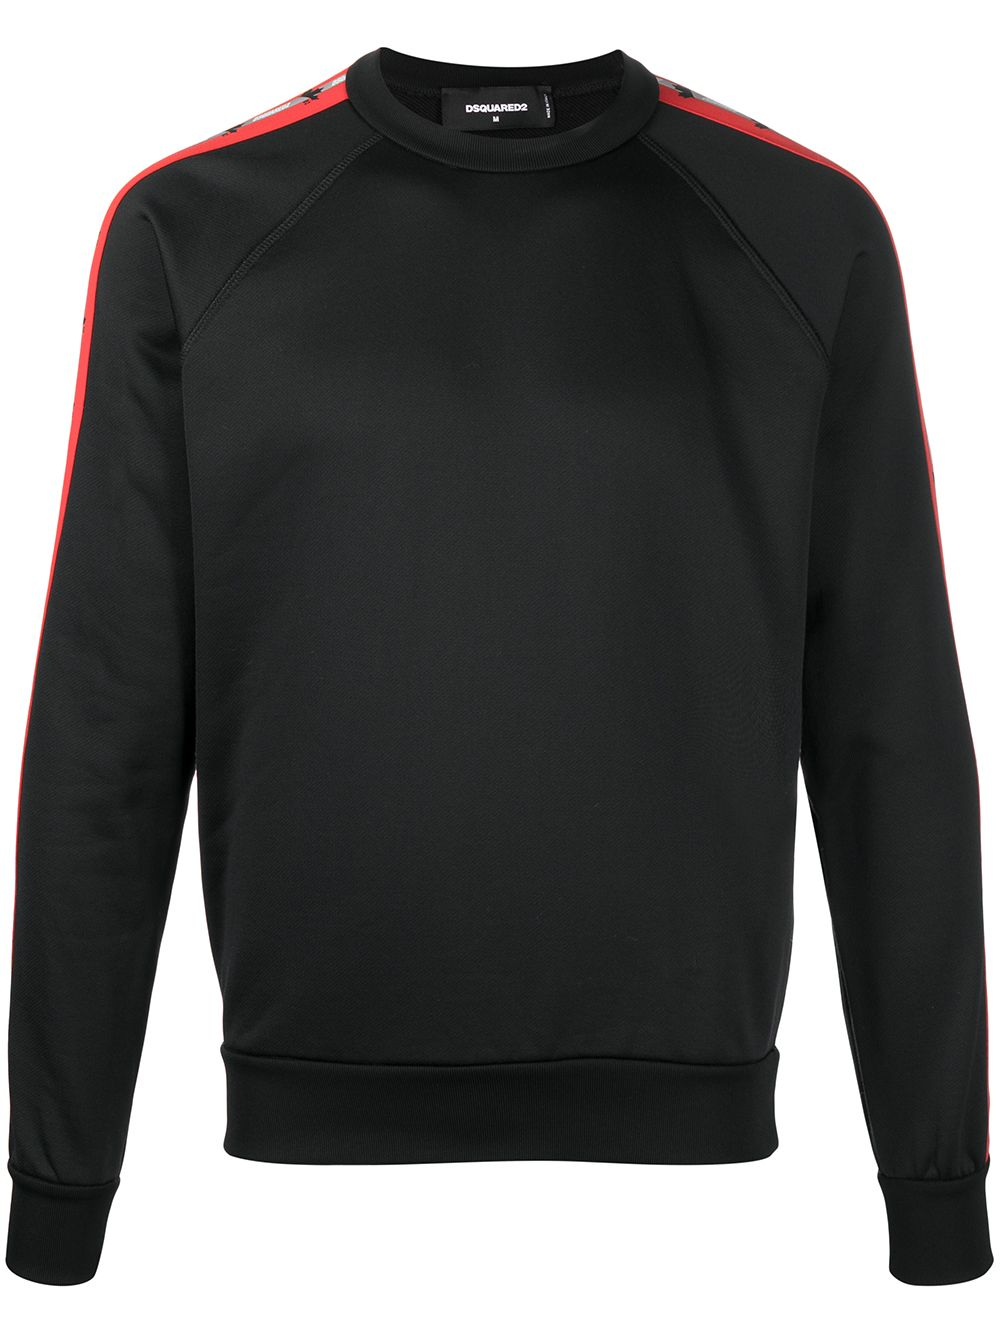 DSQUARED2 Side Stripe Logo Sweatshirt Black